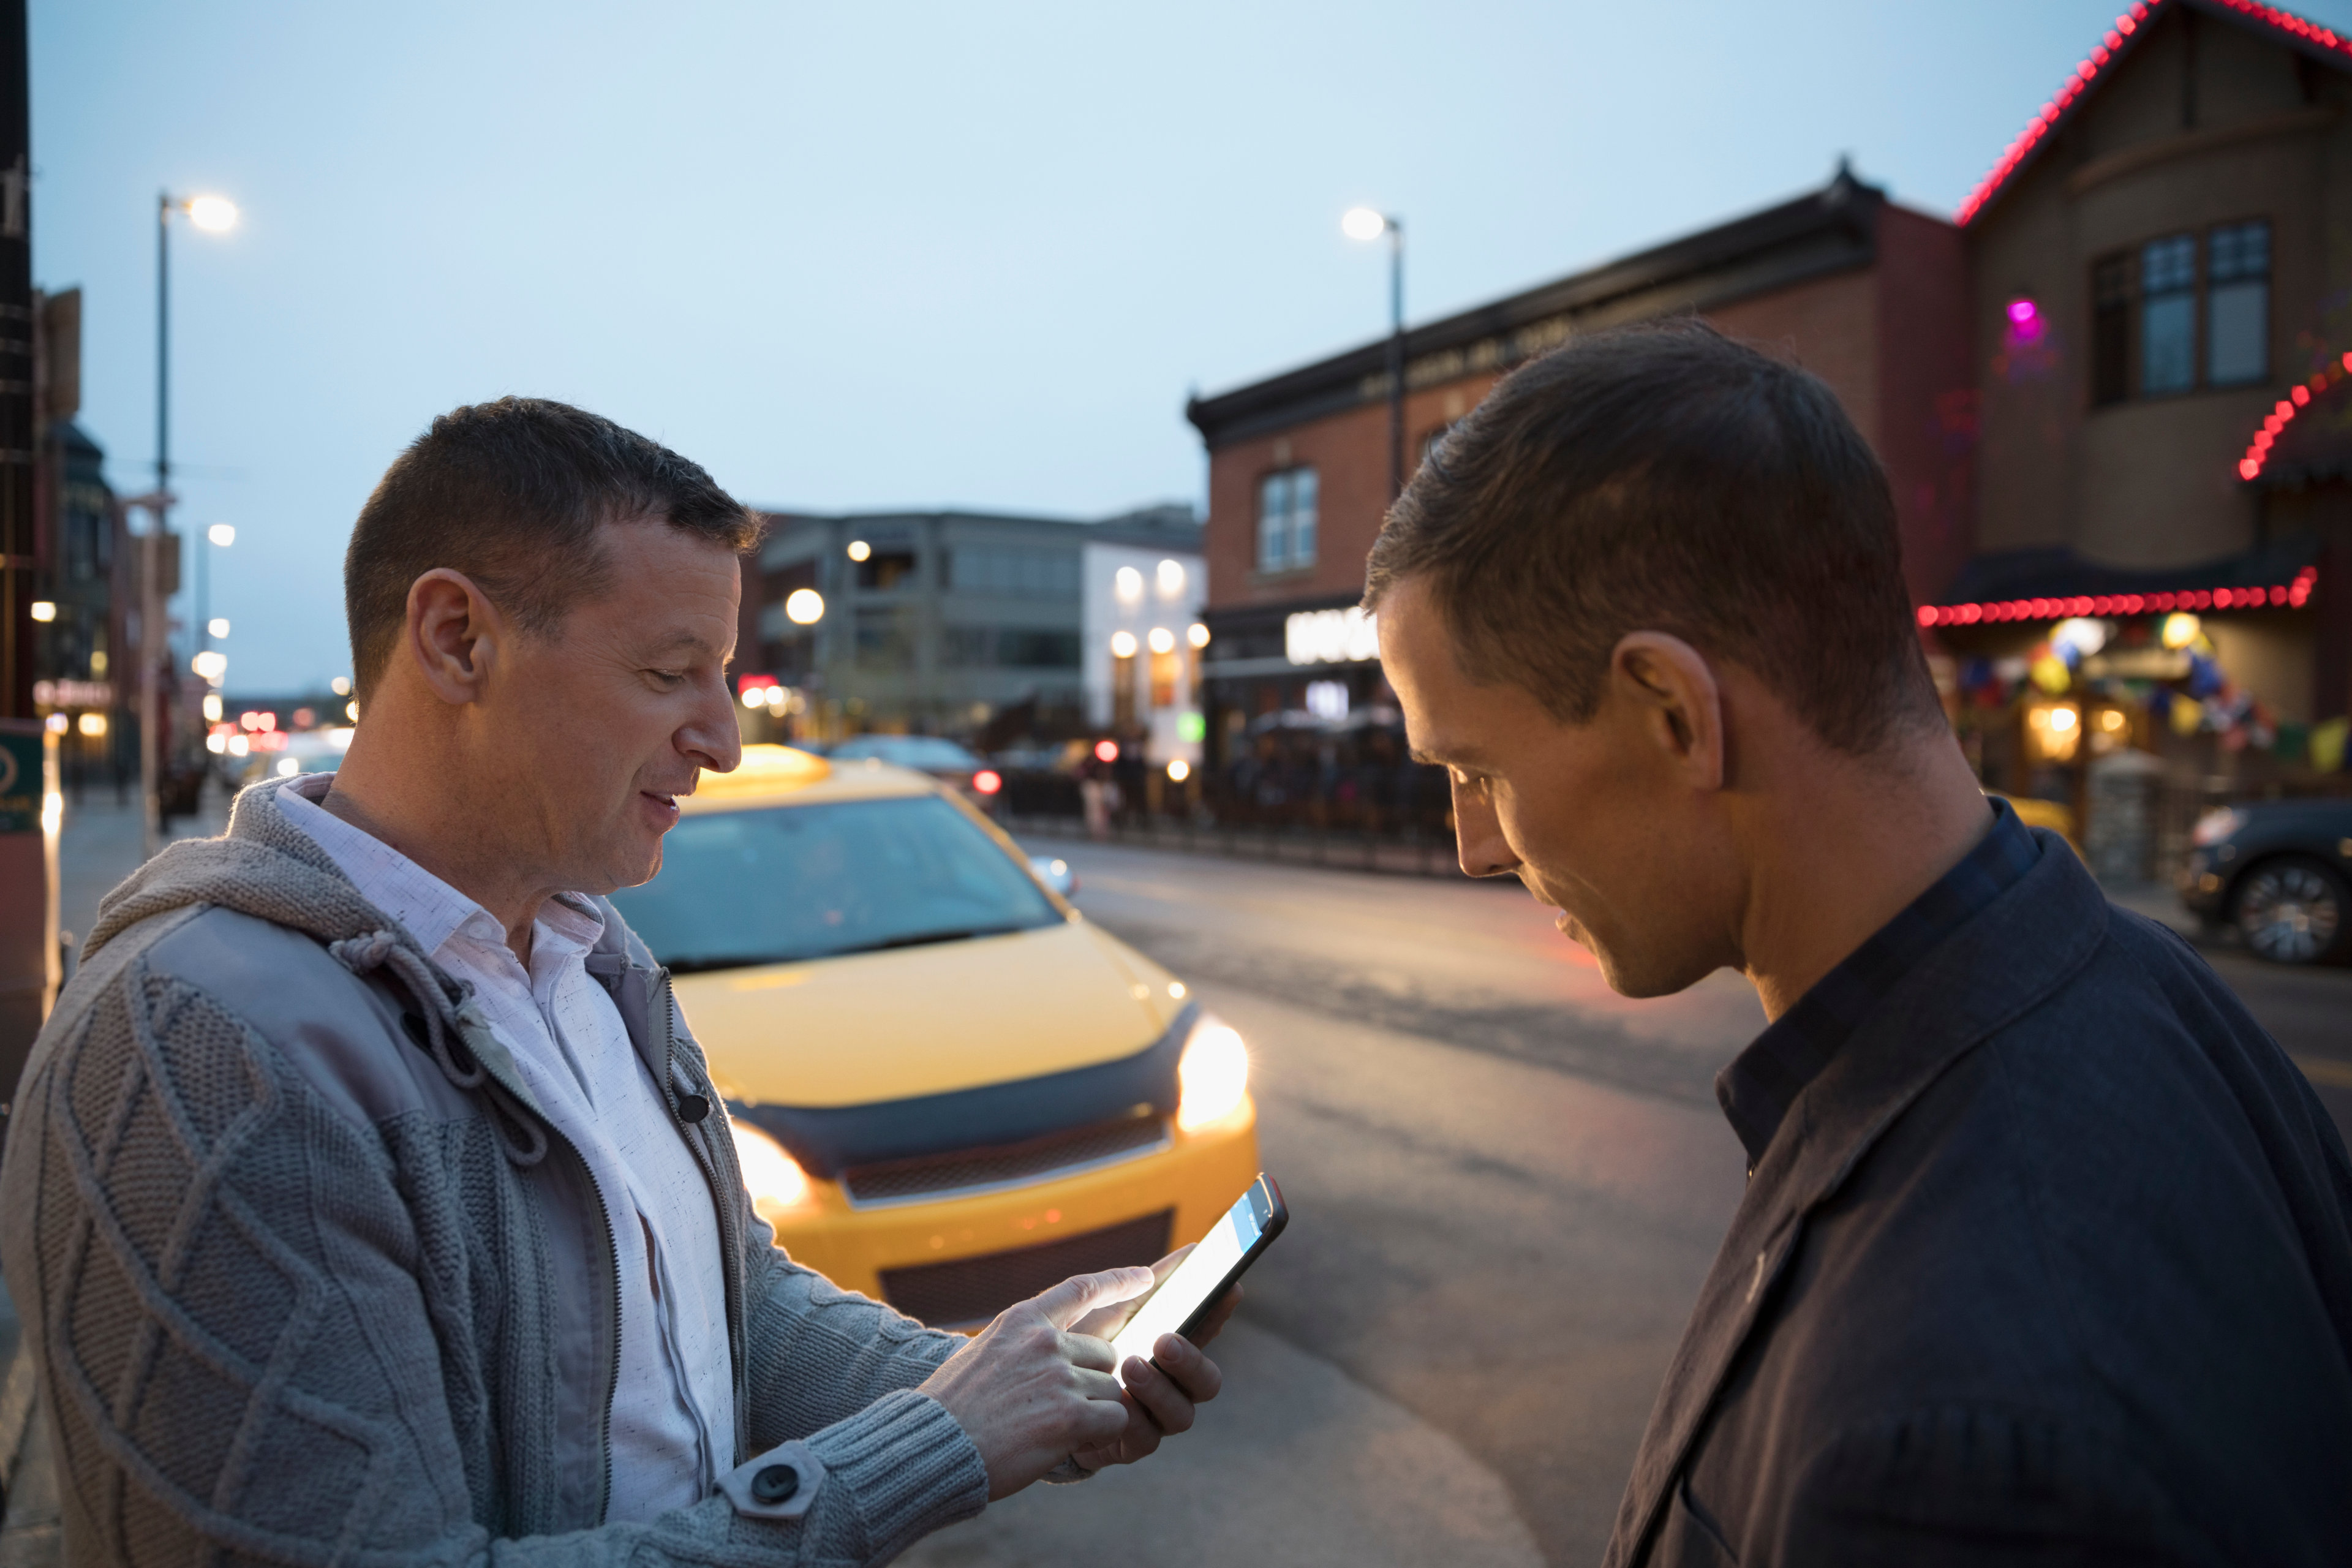 Men using smartphone for crowdsourced taxi on urban street at night